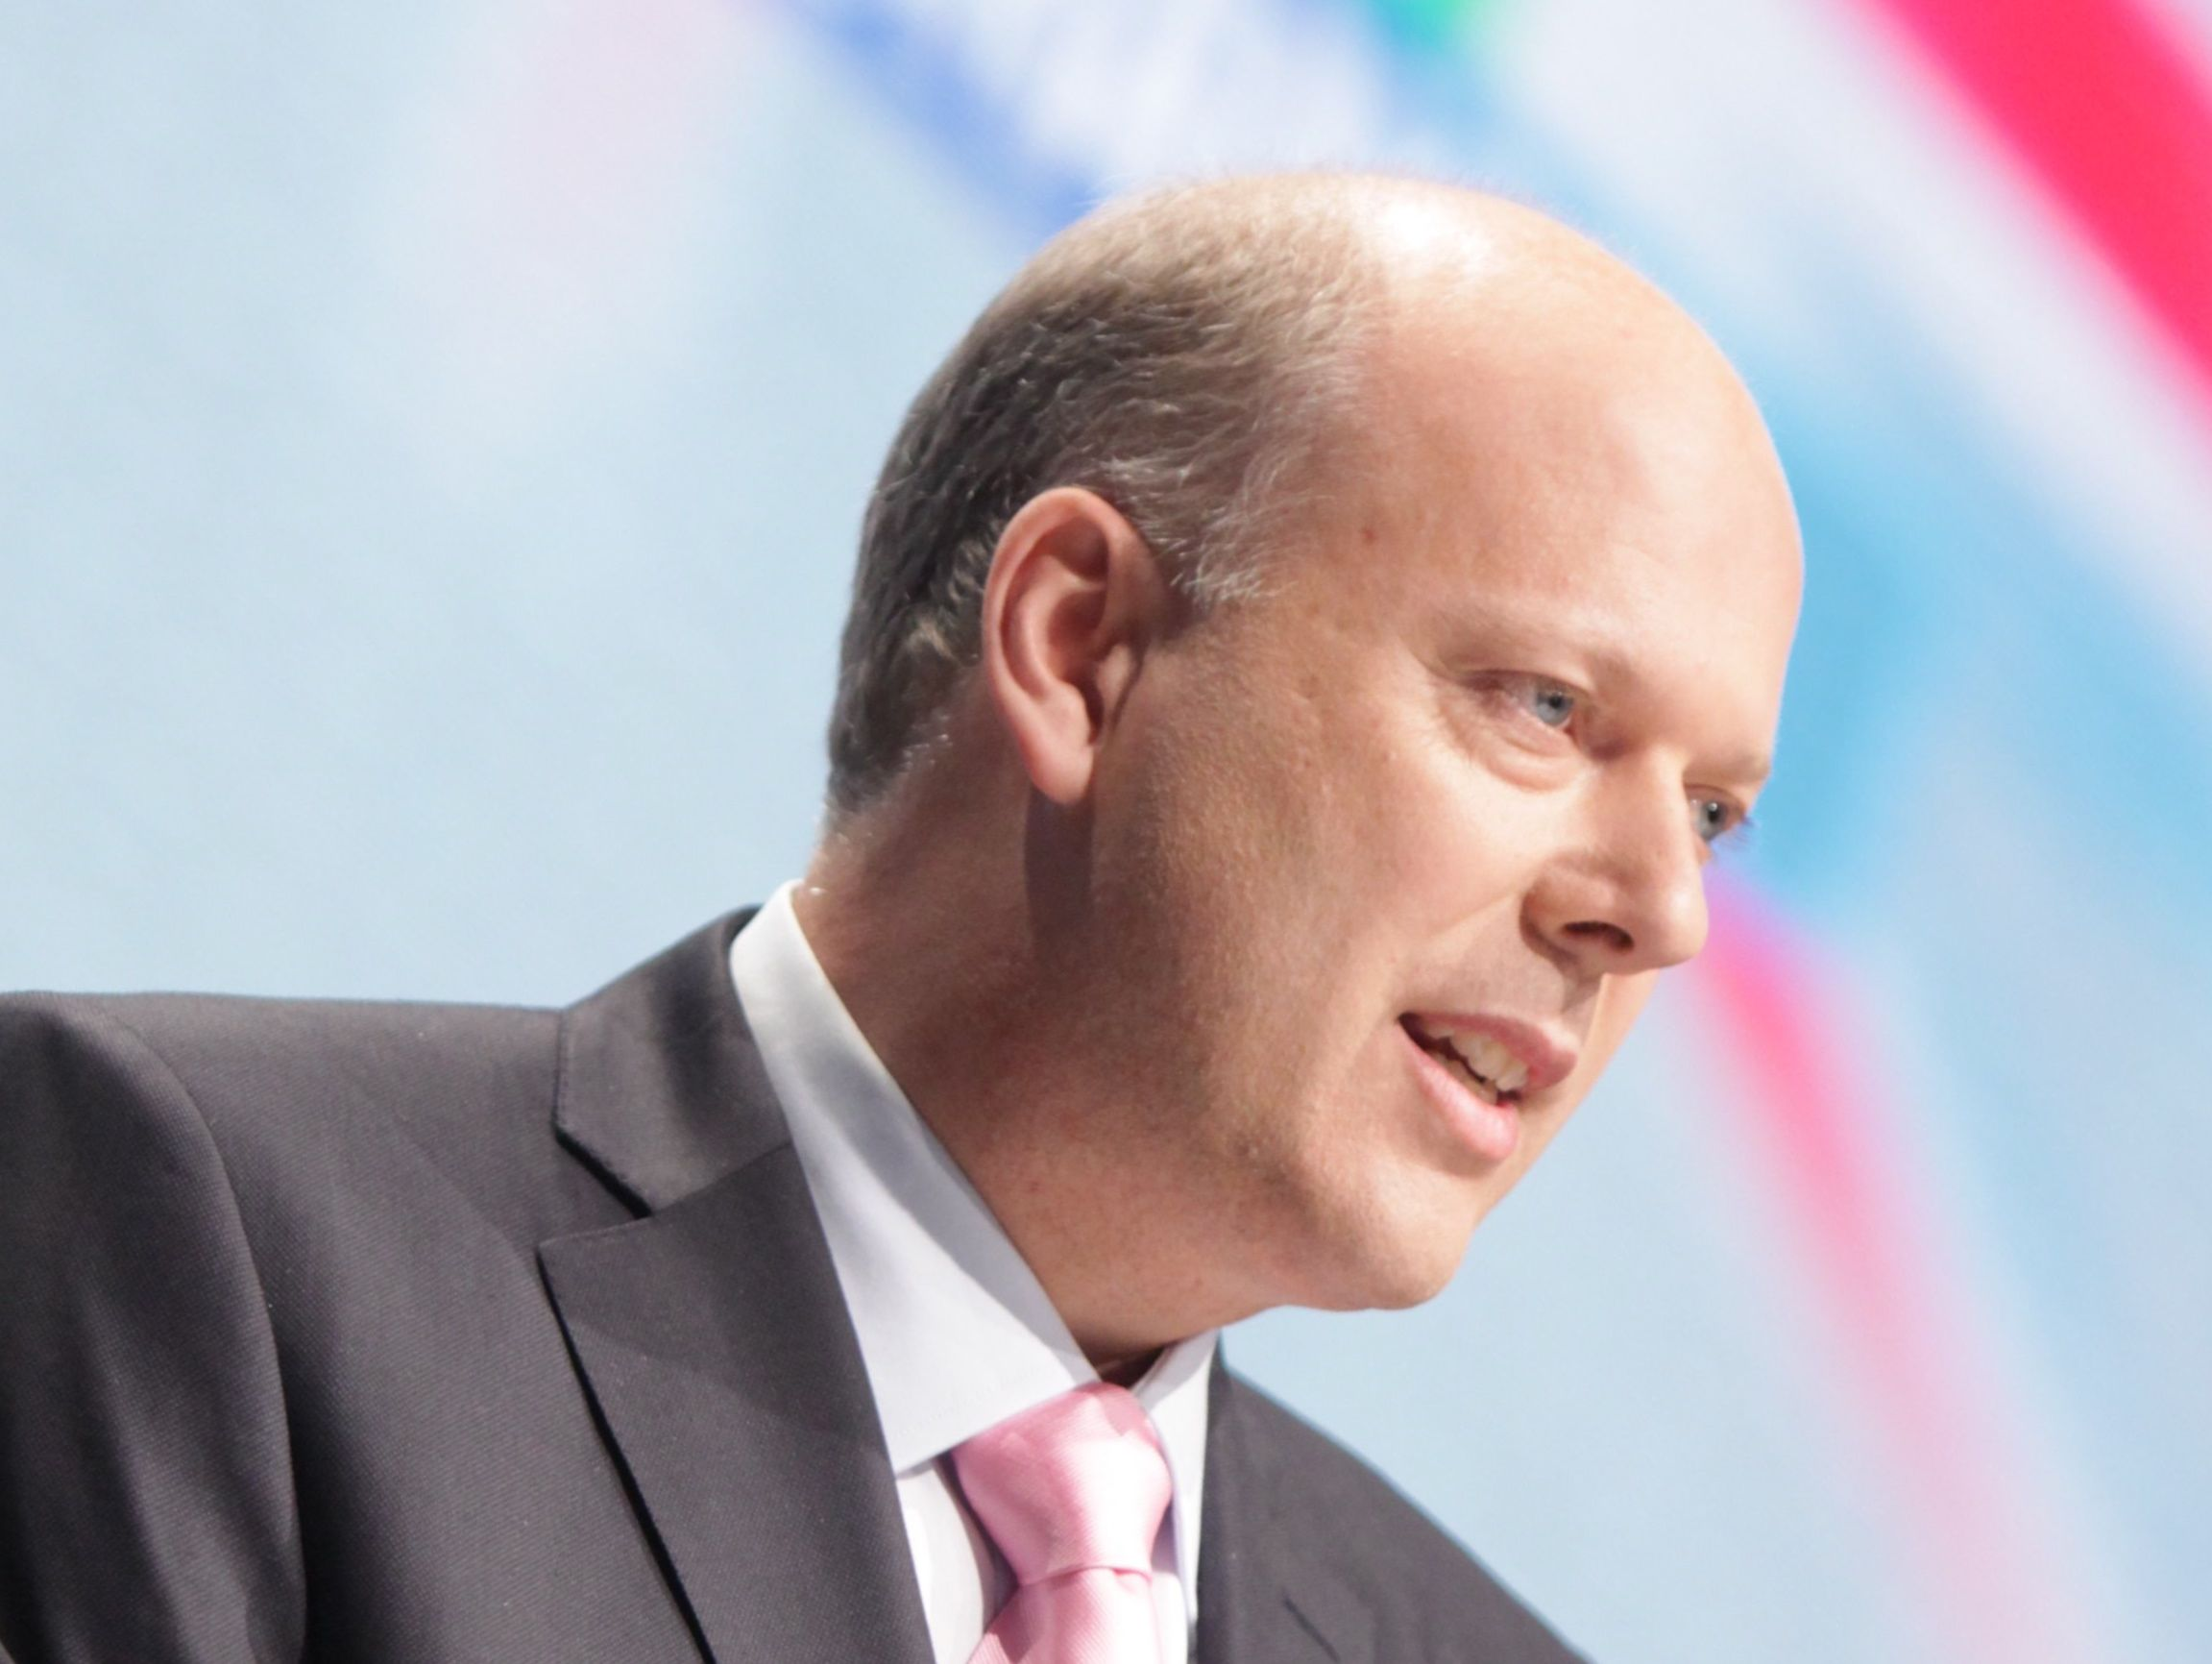 Grayling's rehabilitation revolution 'set up to fail'